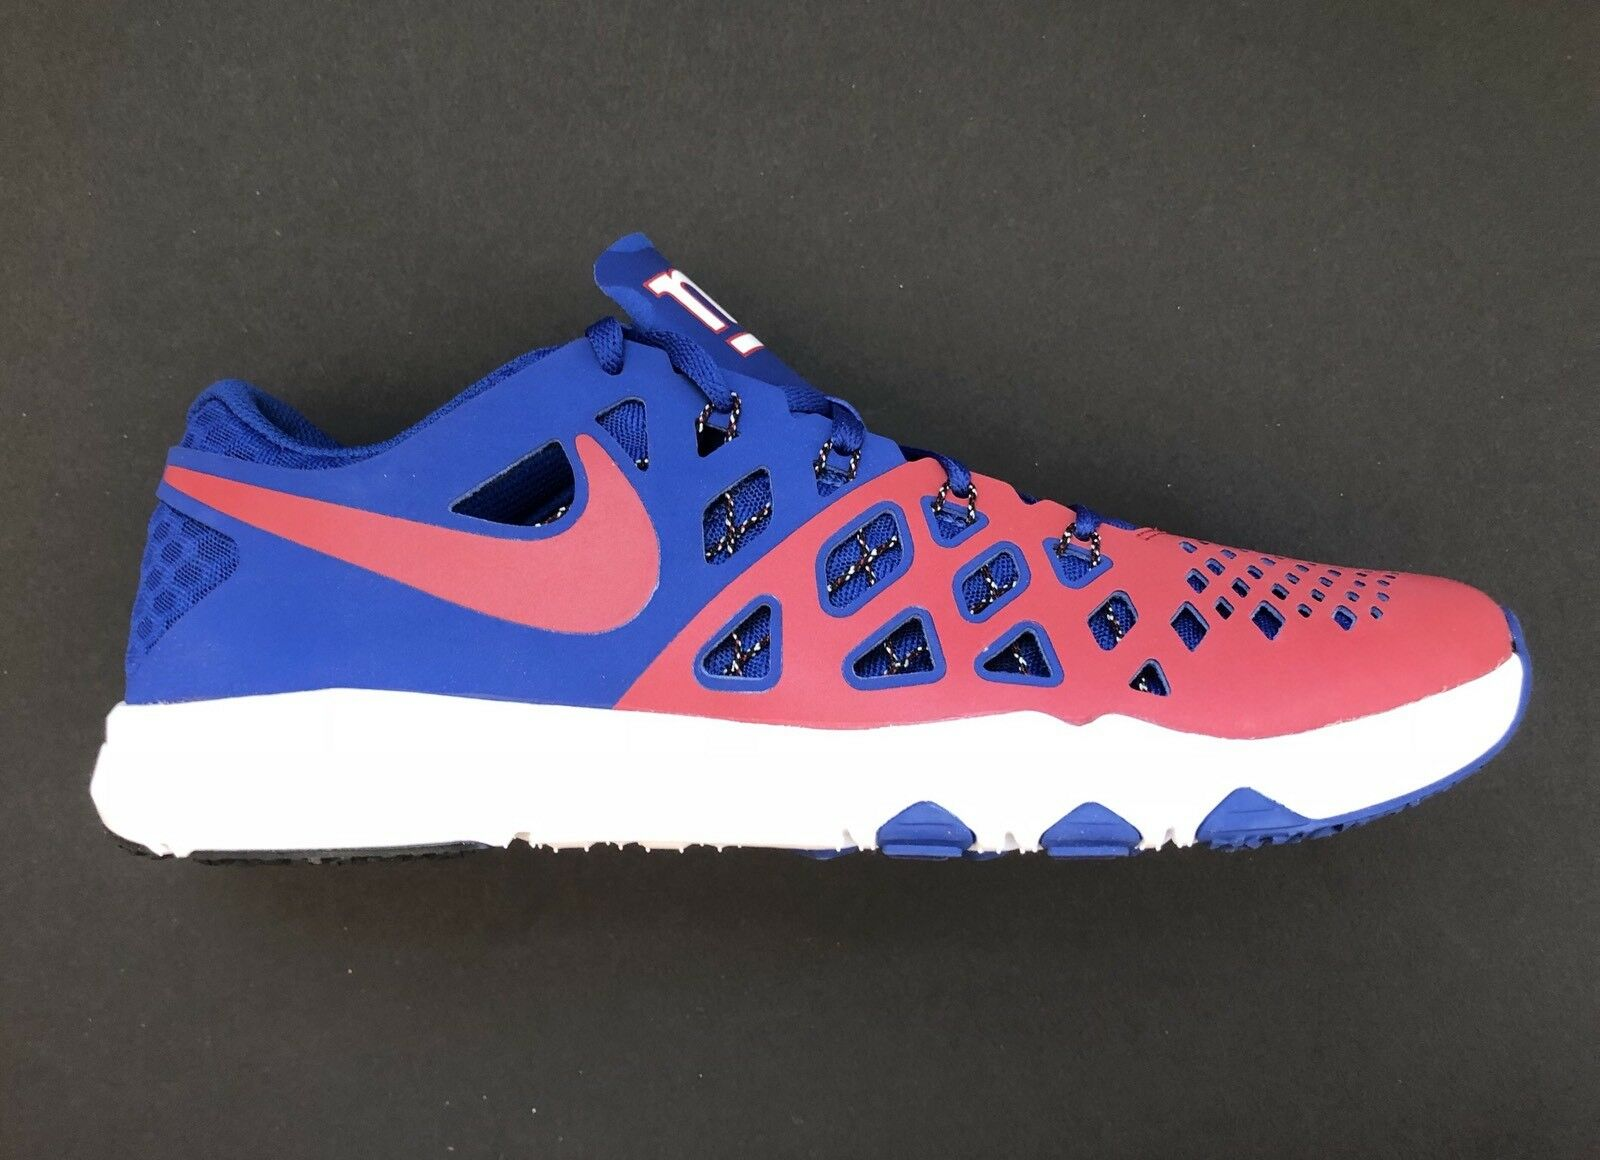 Nike New 4 York Giants Speed Train 4 New AMP Ltd Edition Shoes 848587-610 Size 11.5 7463f5